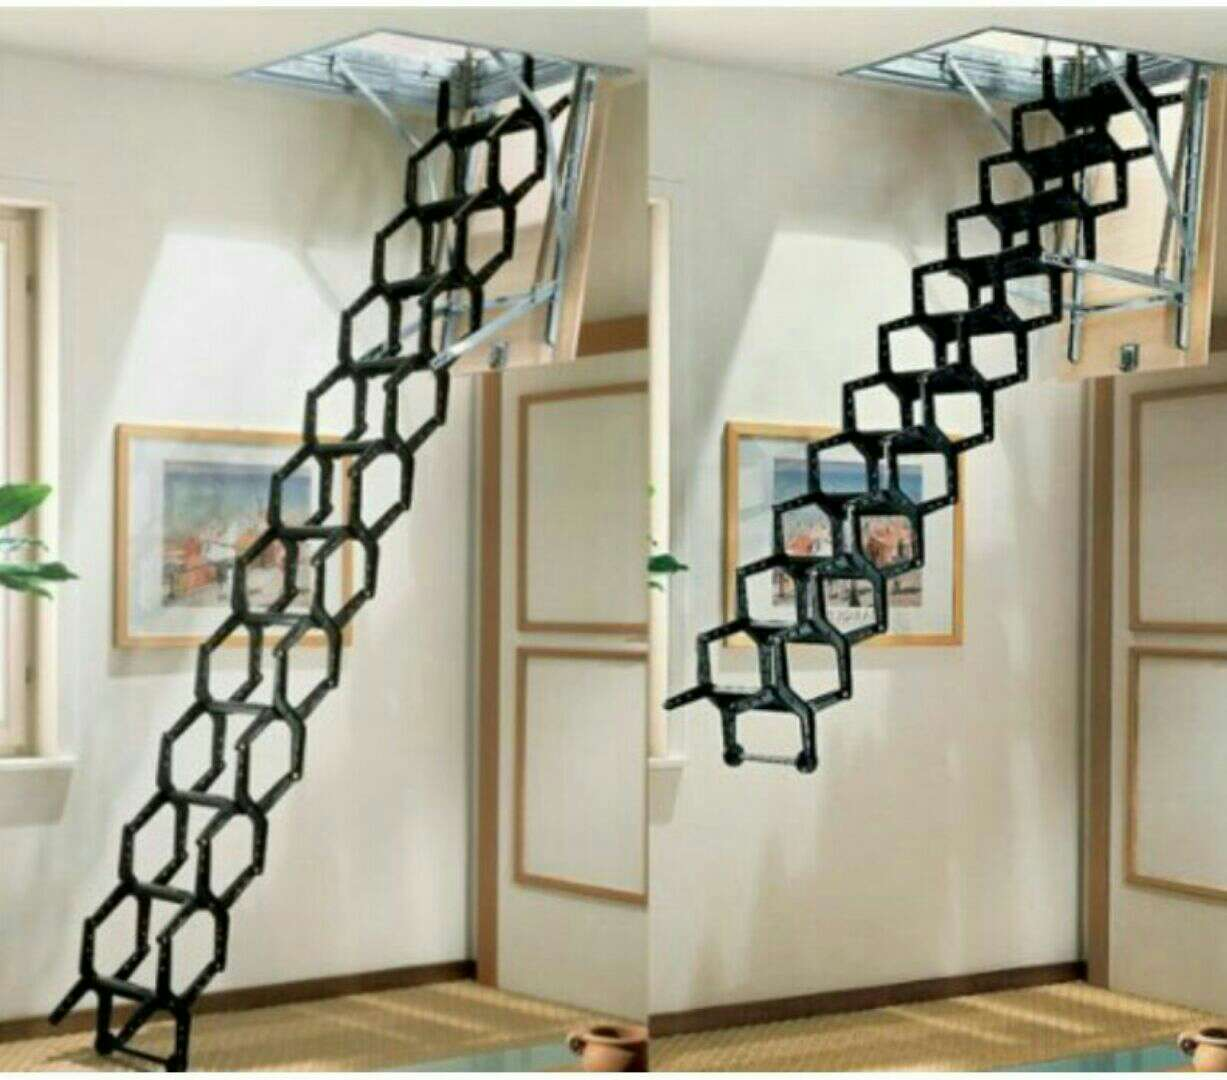 Charming Metal Stair Ideas For Small Spaces